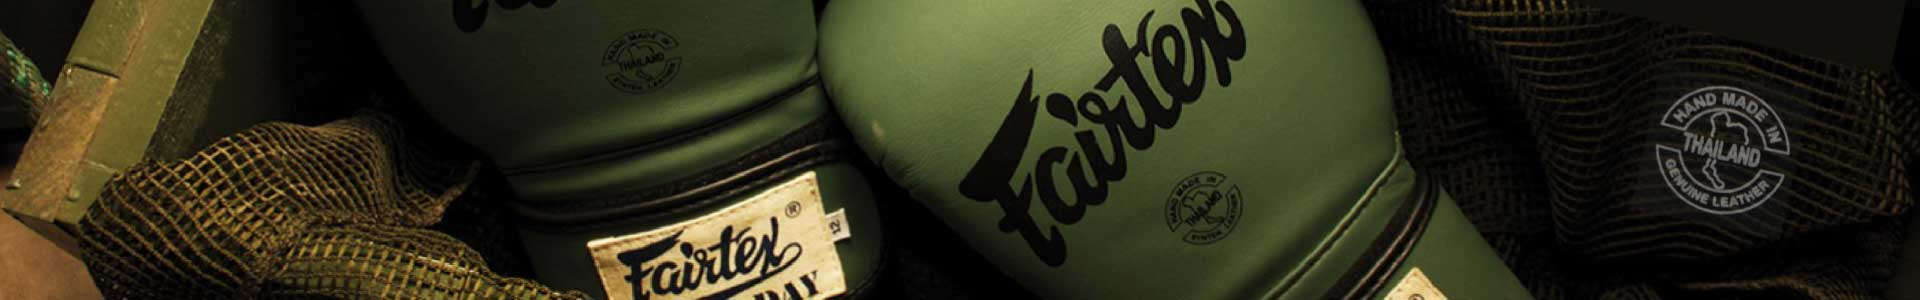 Budopunkt Fairtex Muay Thai equipment